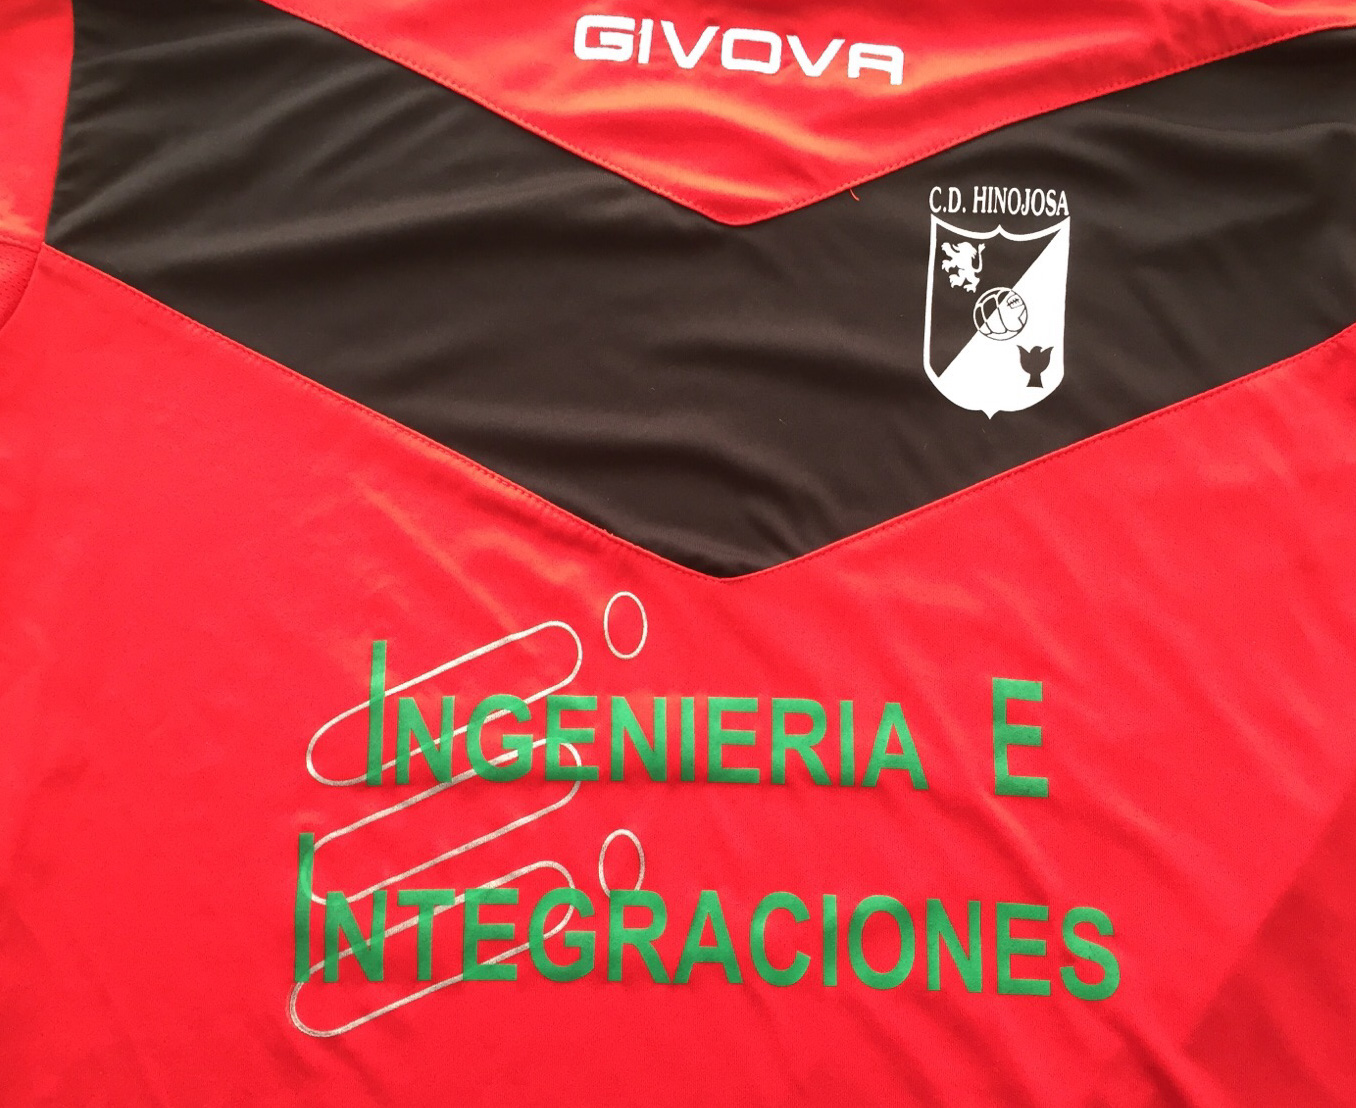 Camiseta CD. Hinojosa